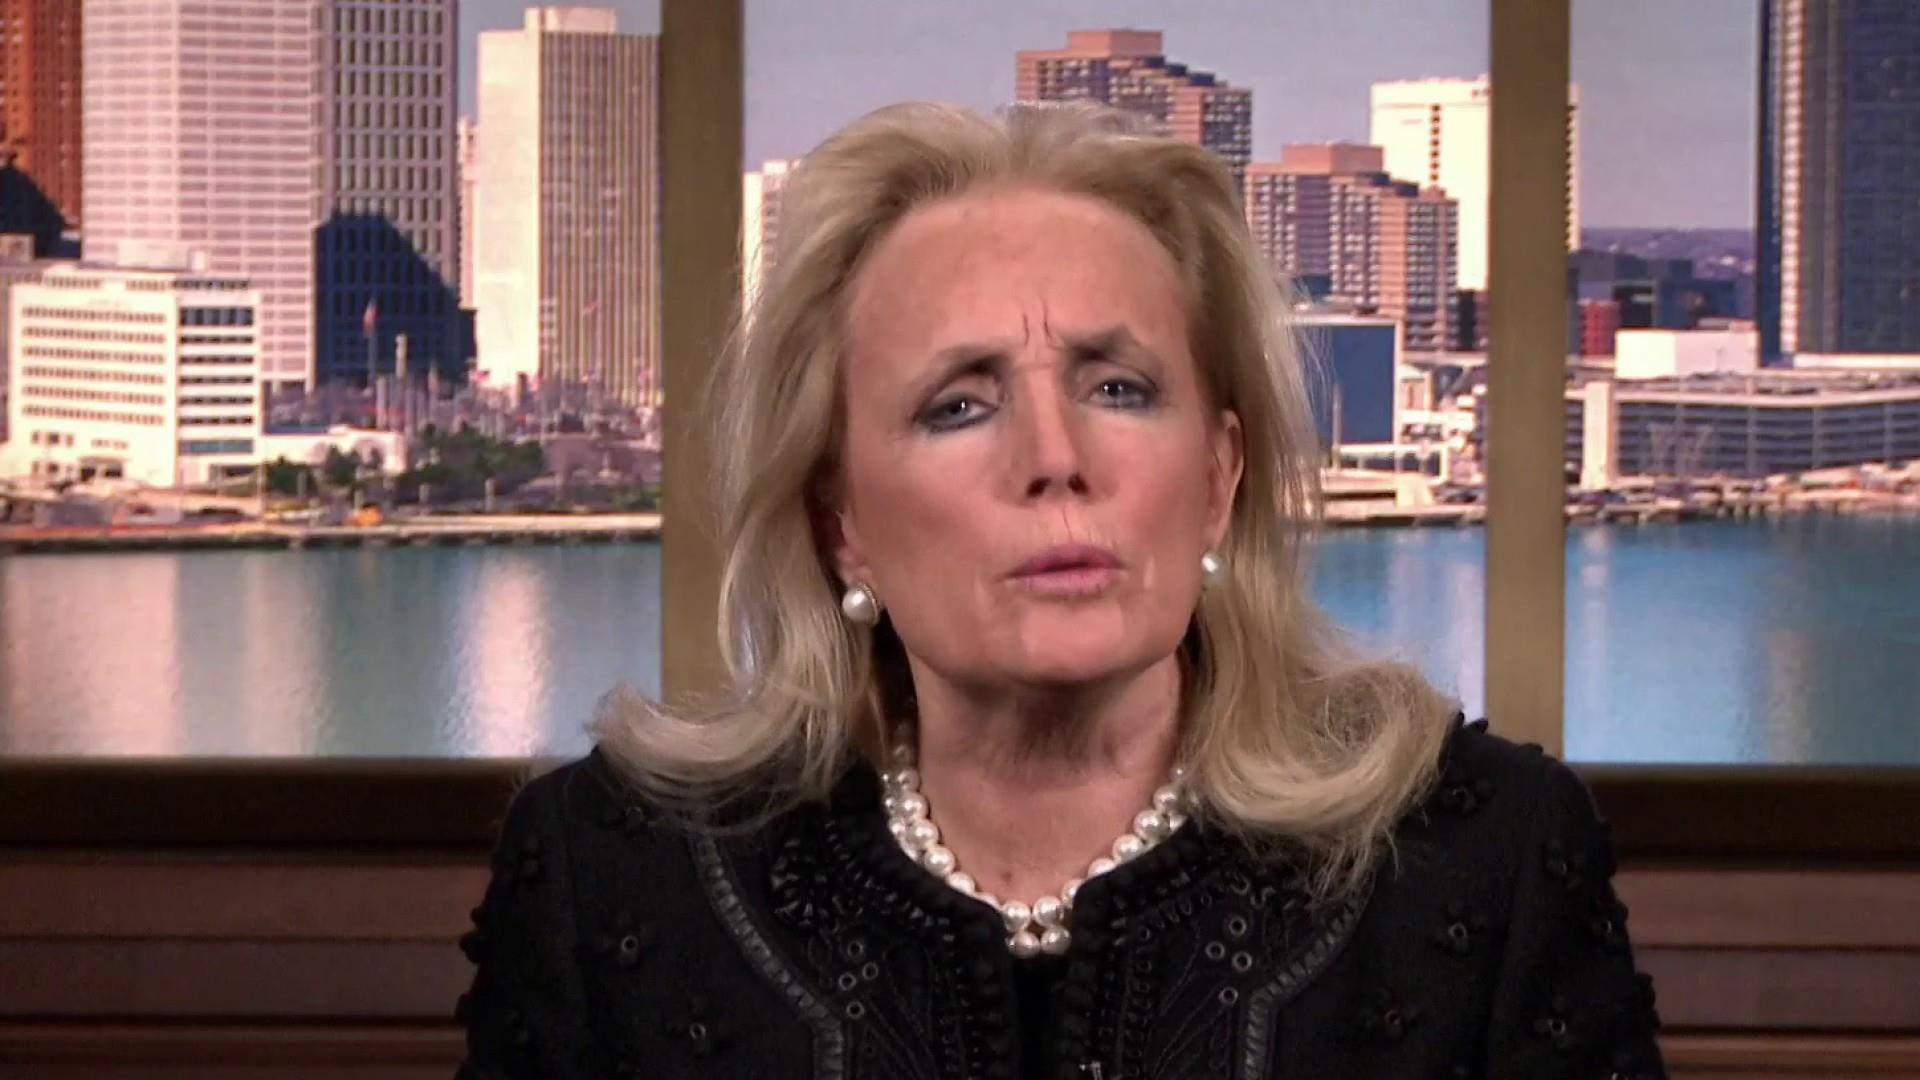 Rep. Dingell: Everyone in DC can stand up to hatefulness